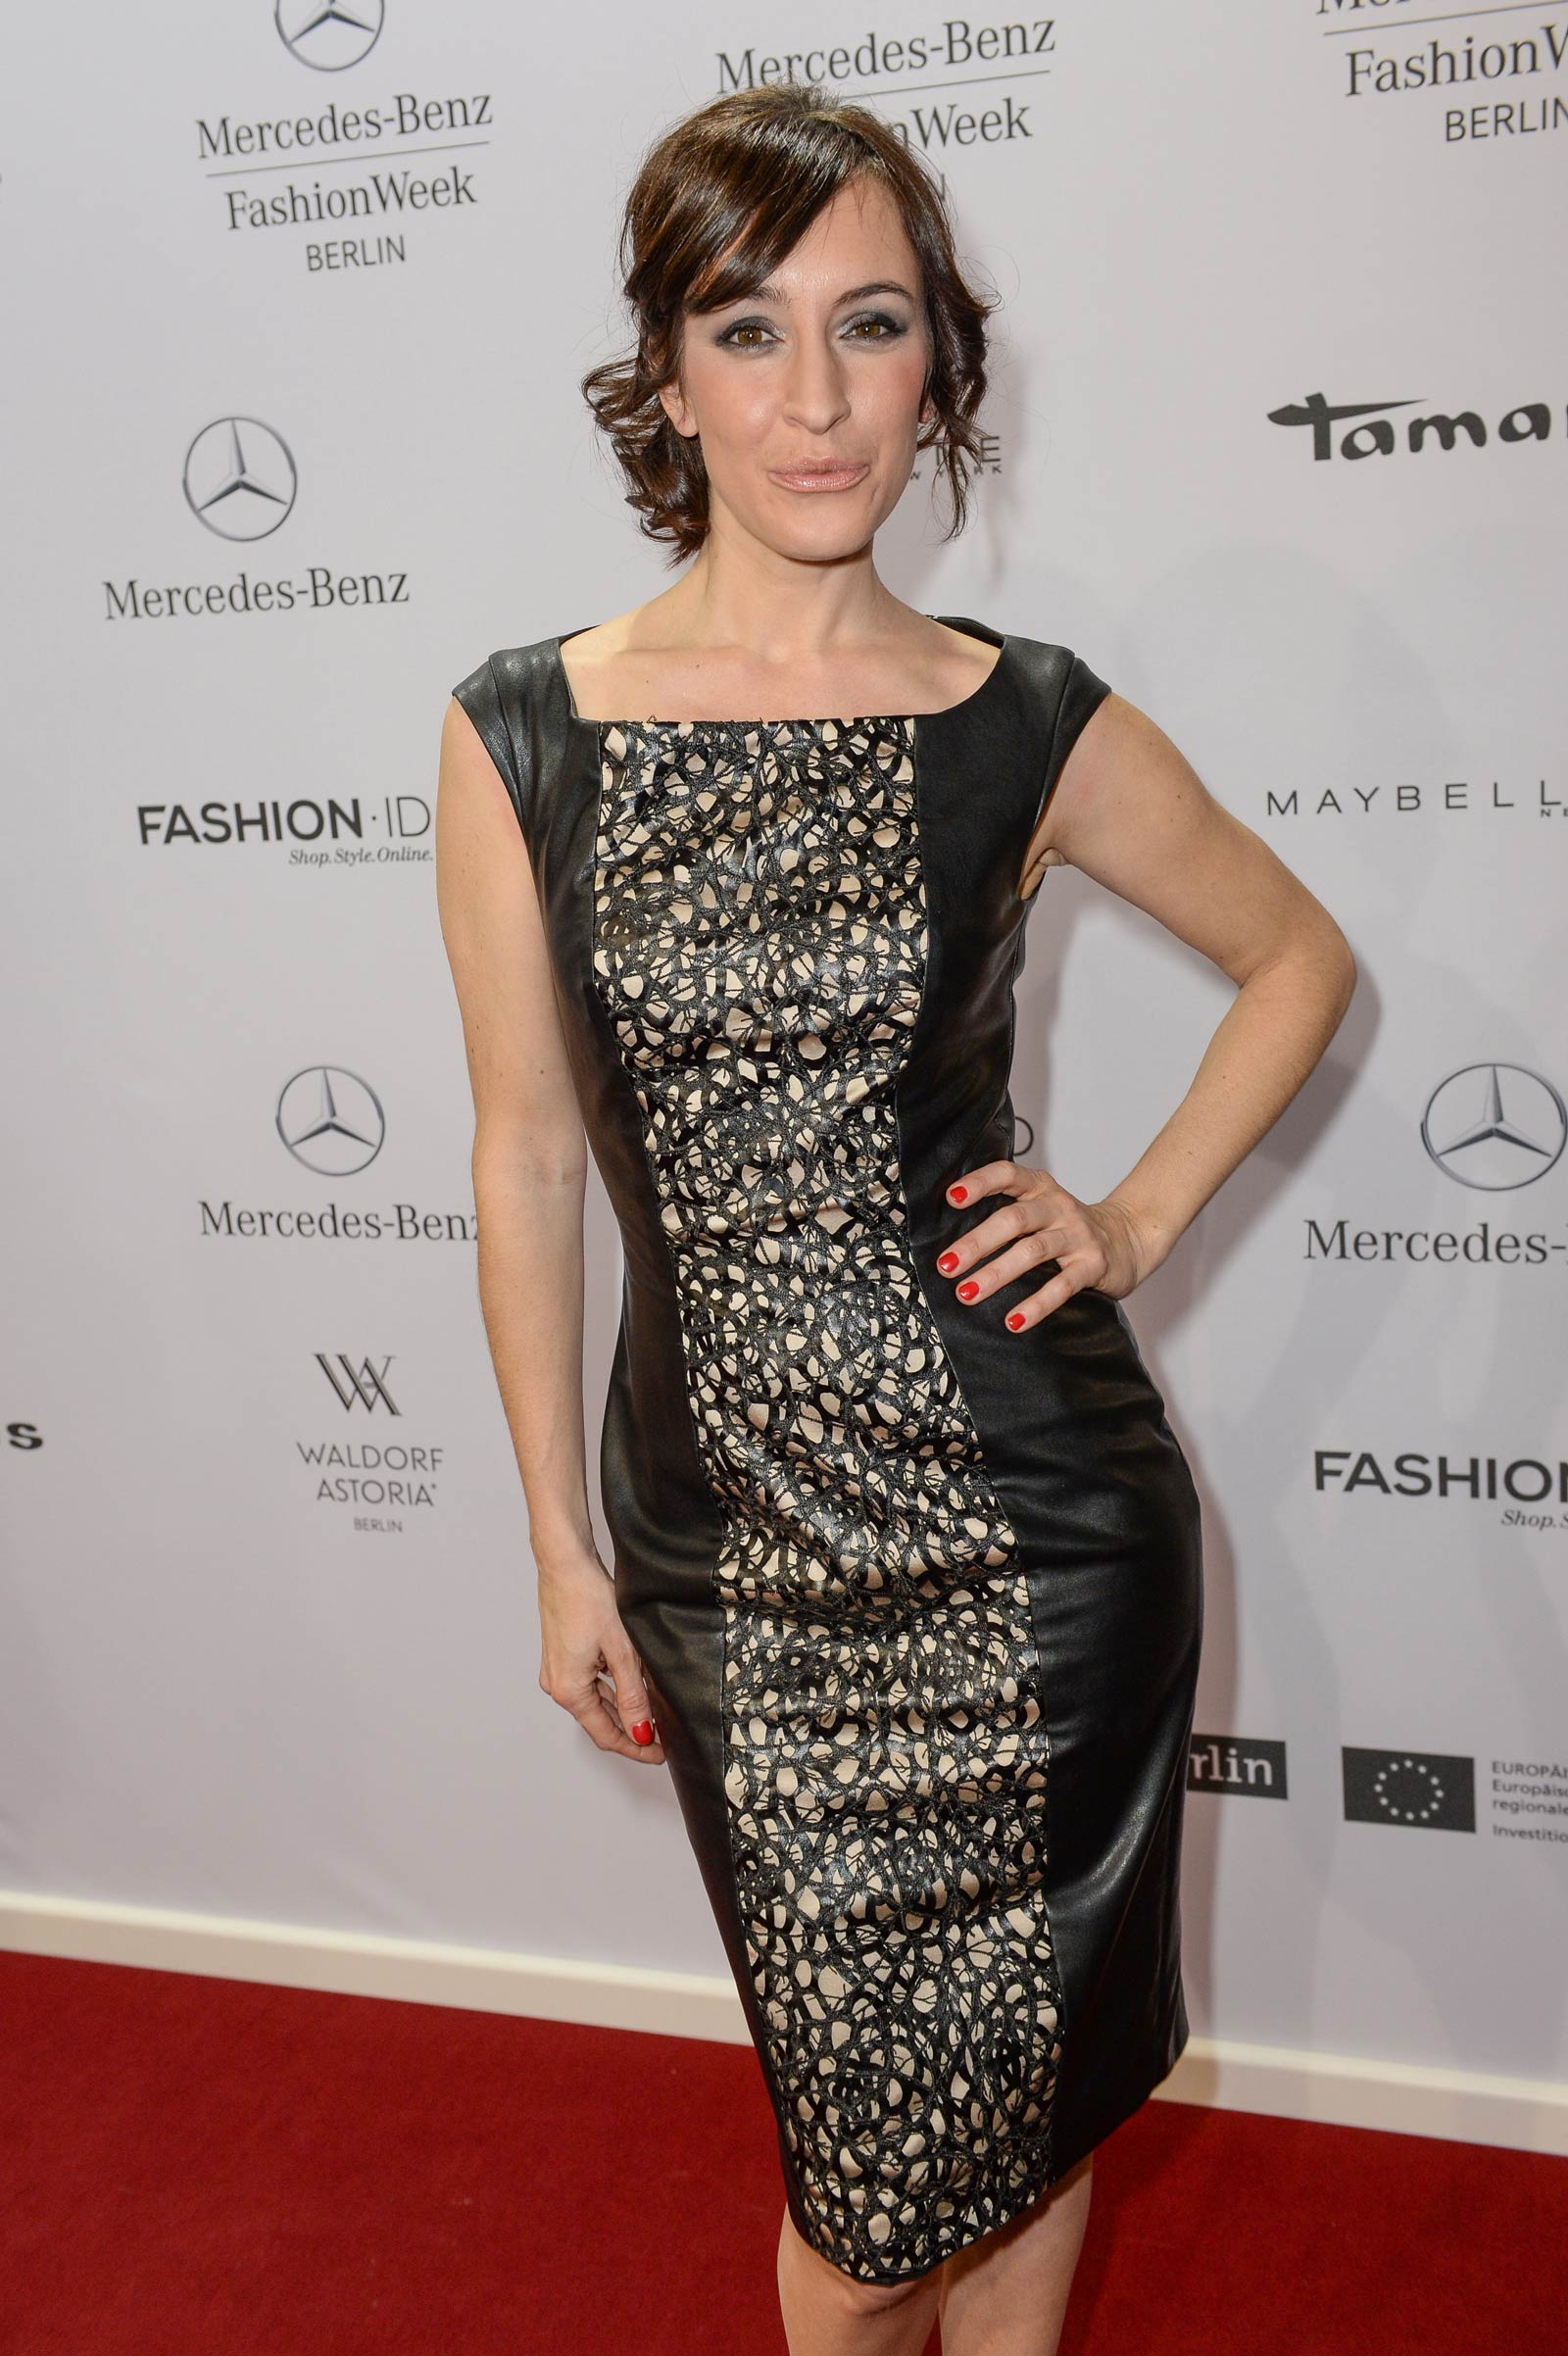 Maike von Bremen attends Merceses Benz Fashion Week